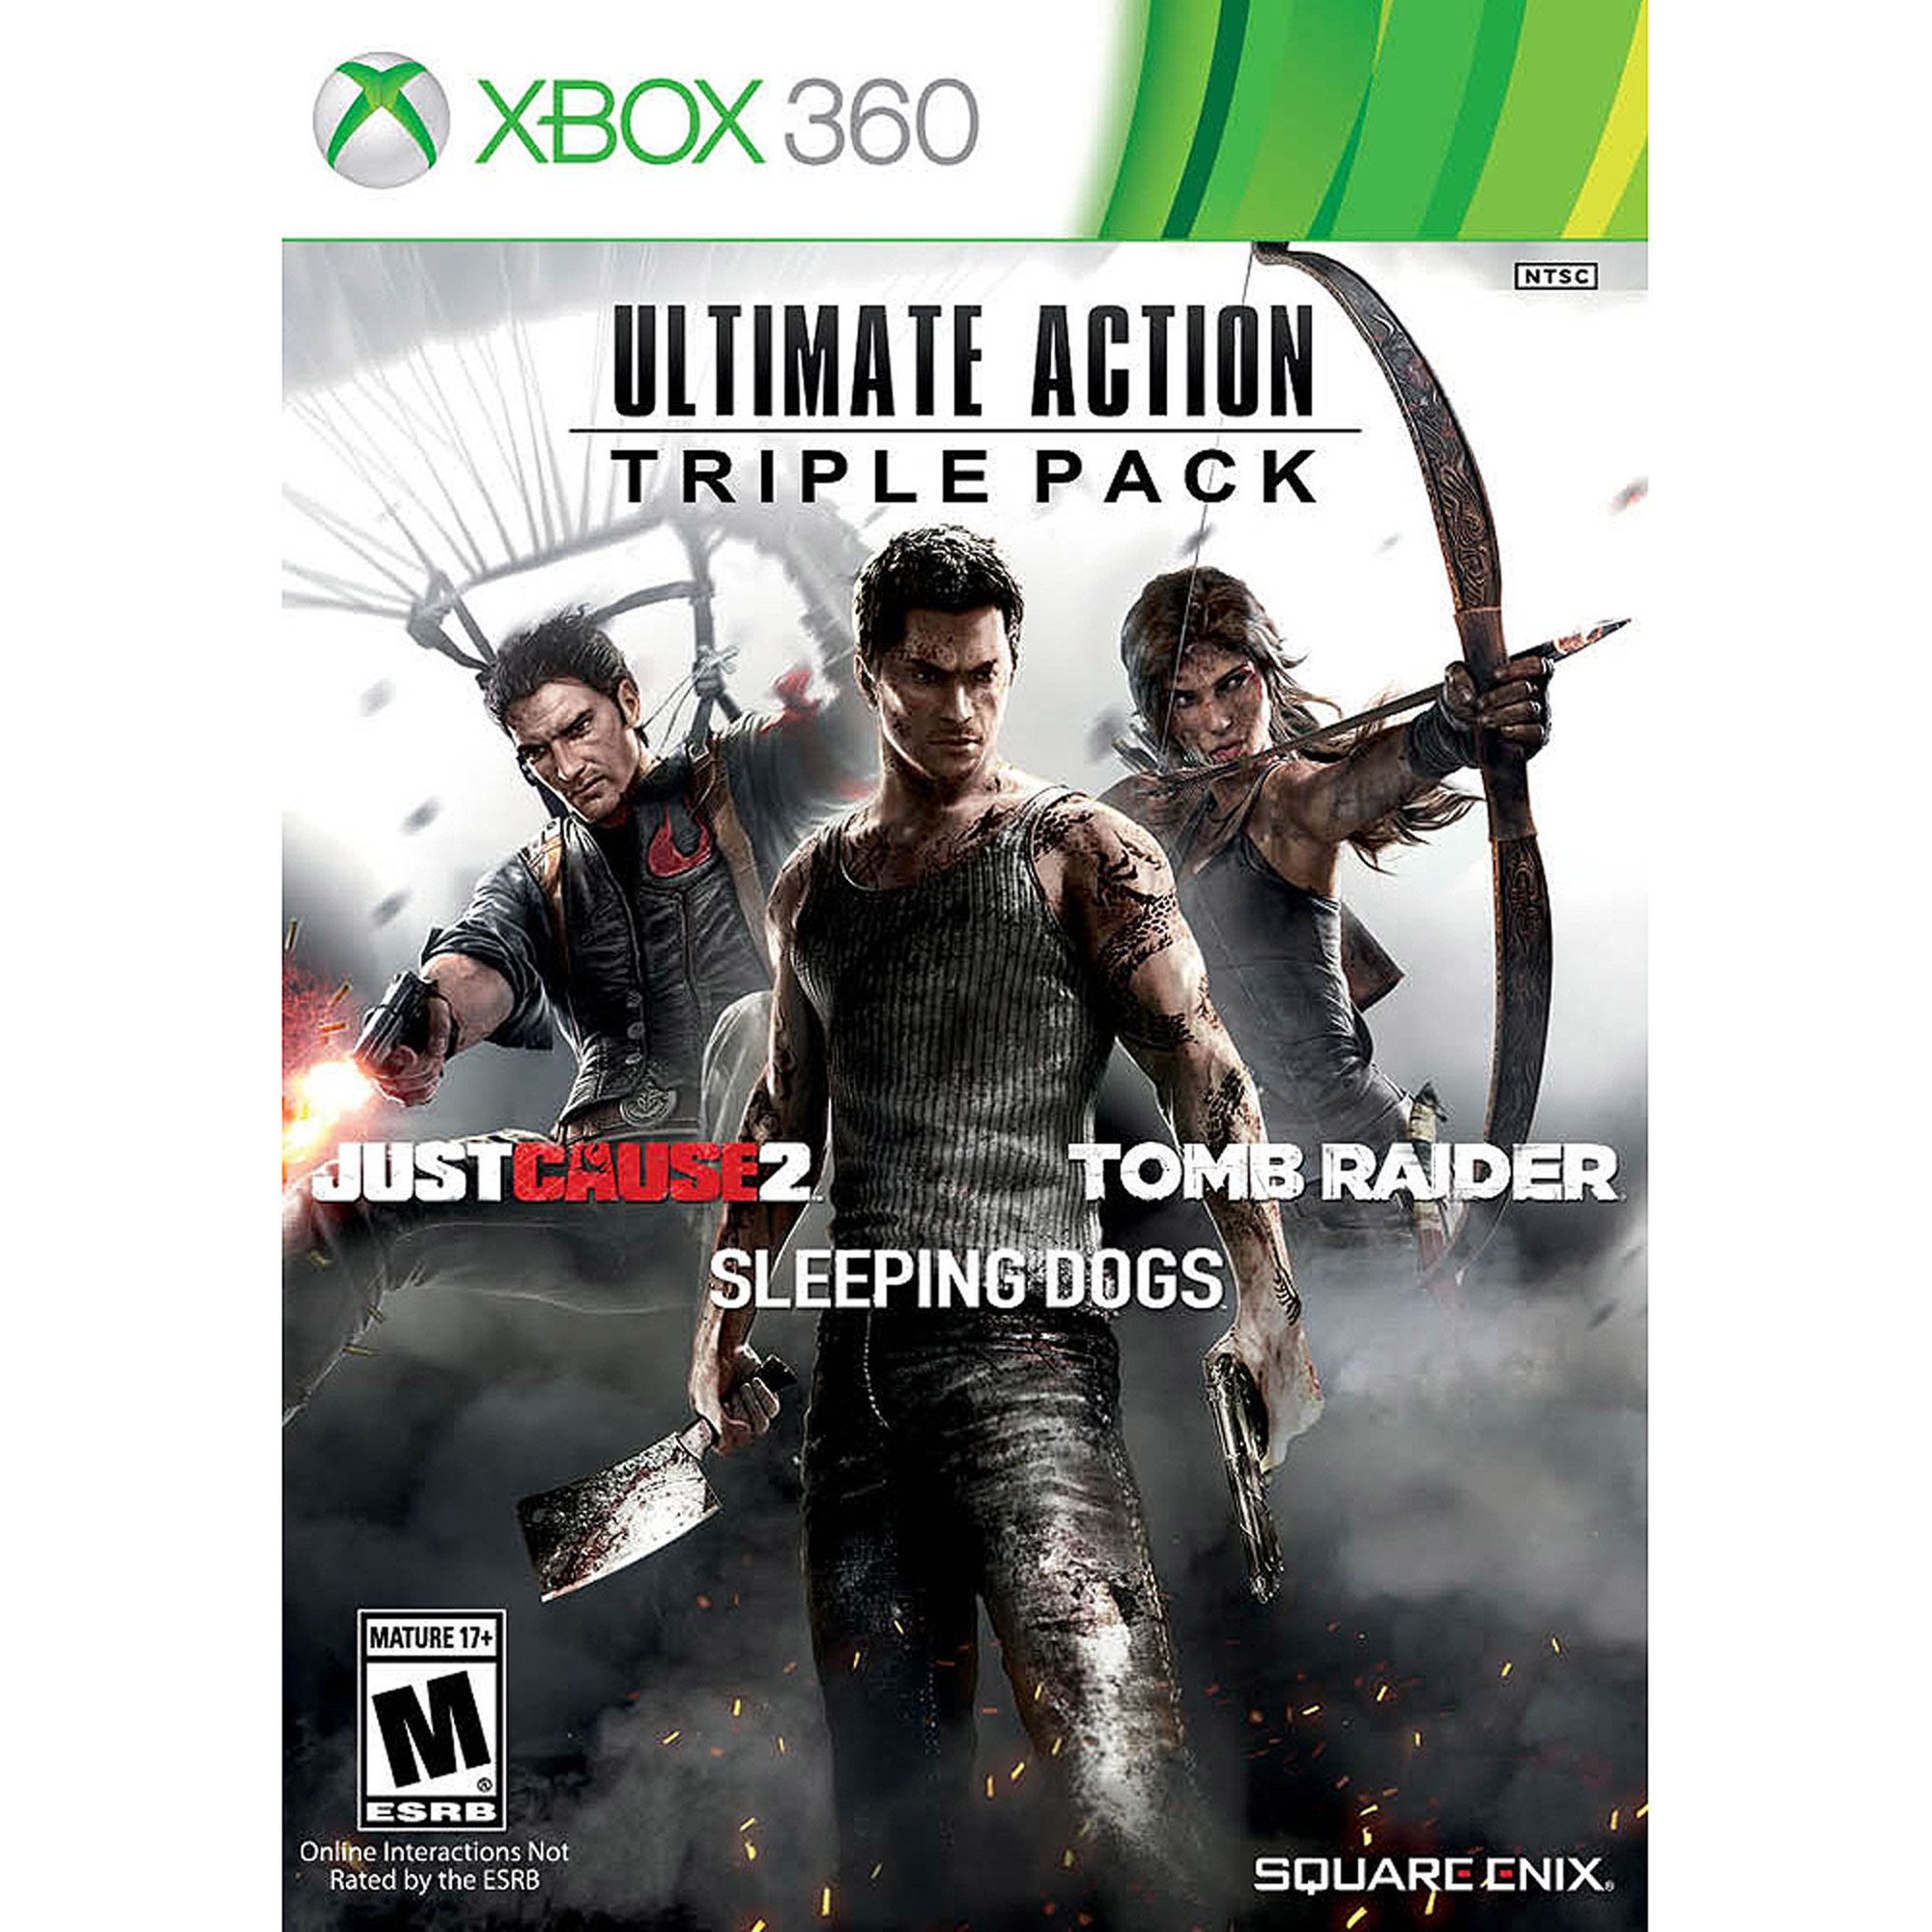 Ultimate Action Triple Pack, Square Enix, Xbox 360, 662248916194